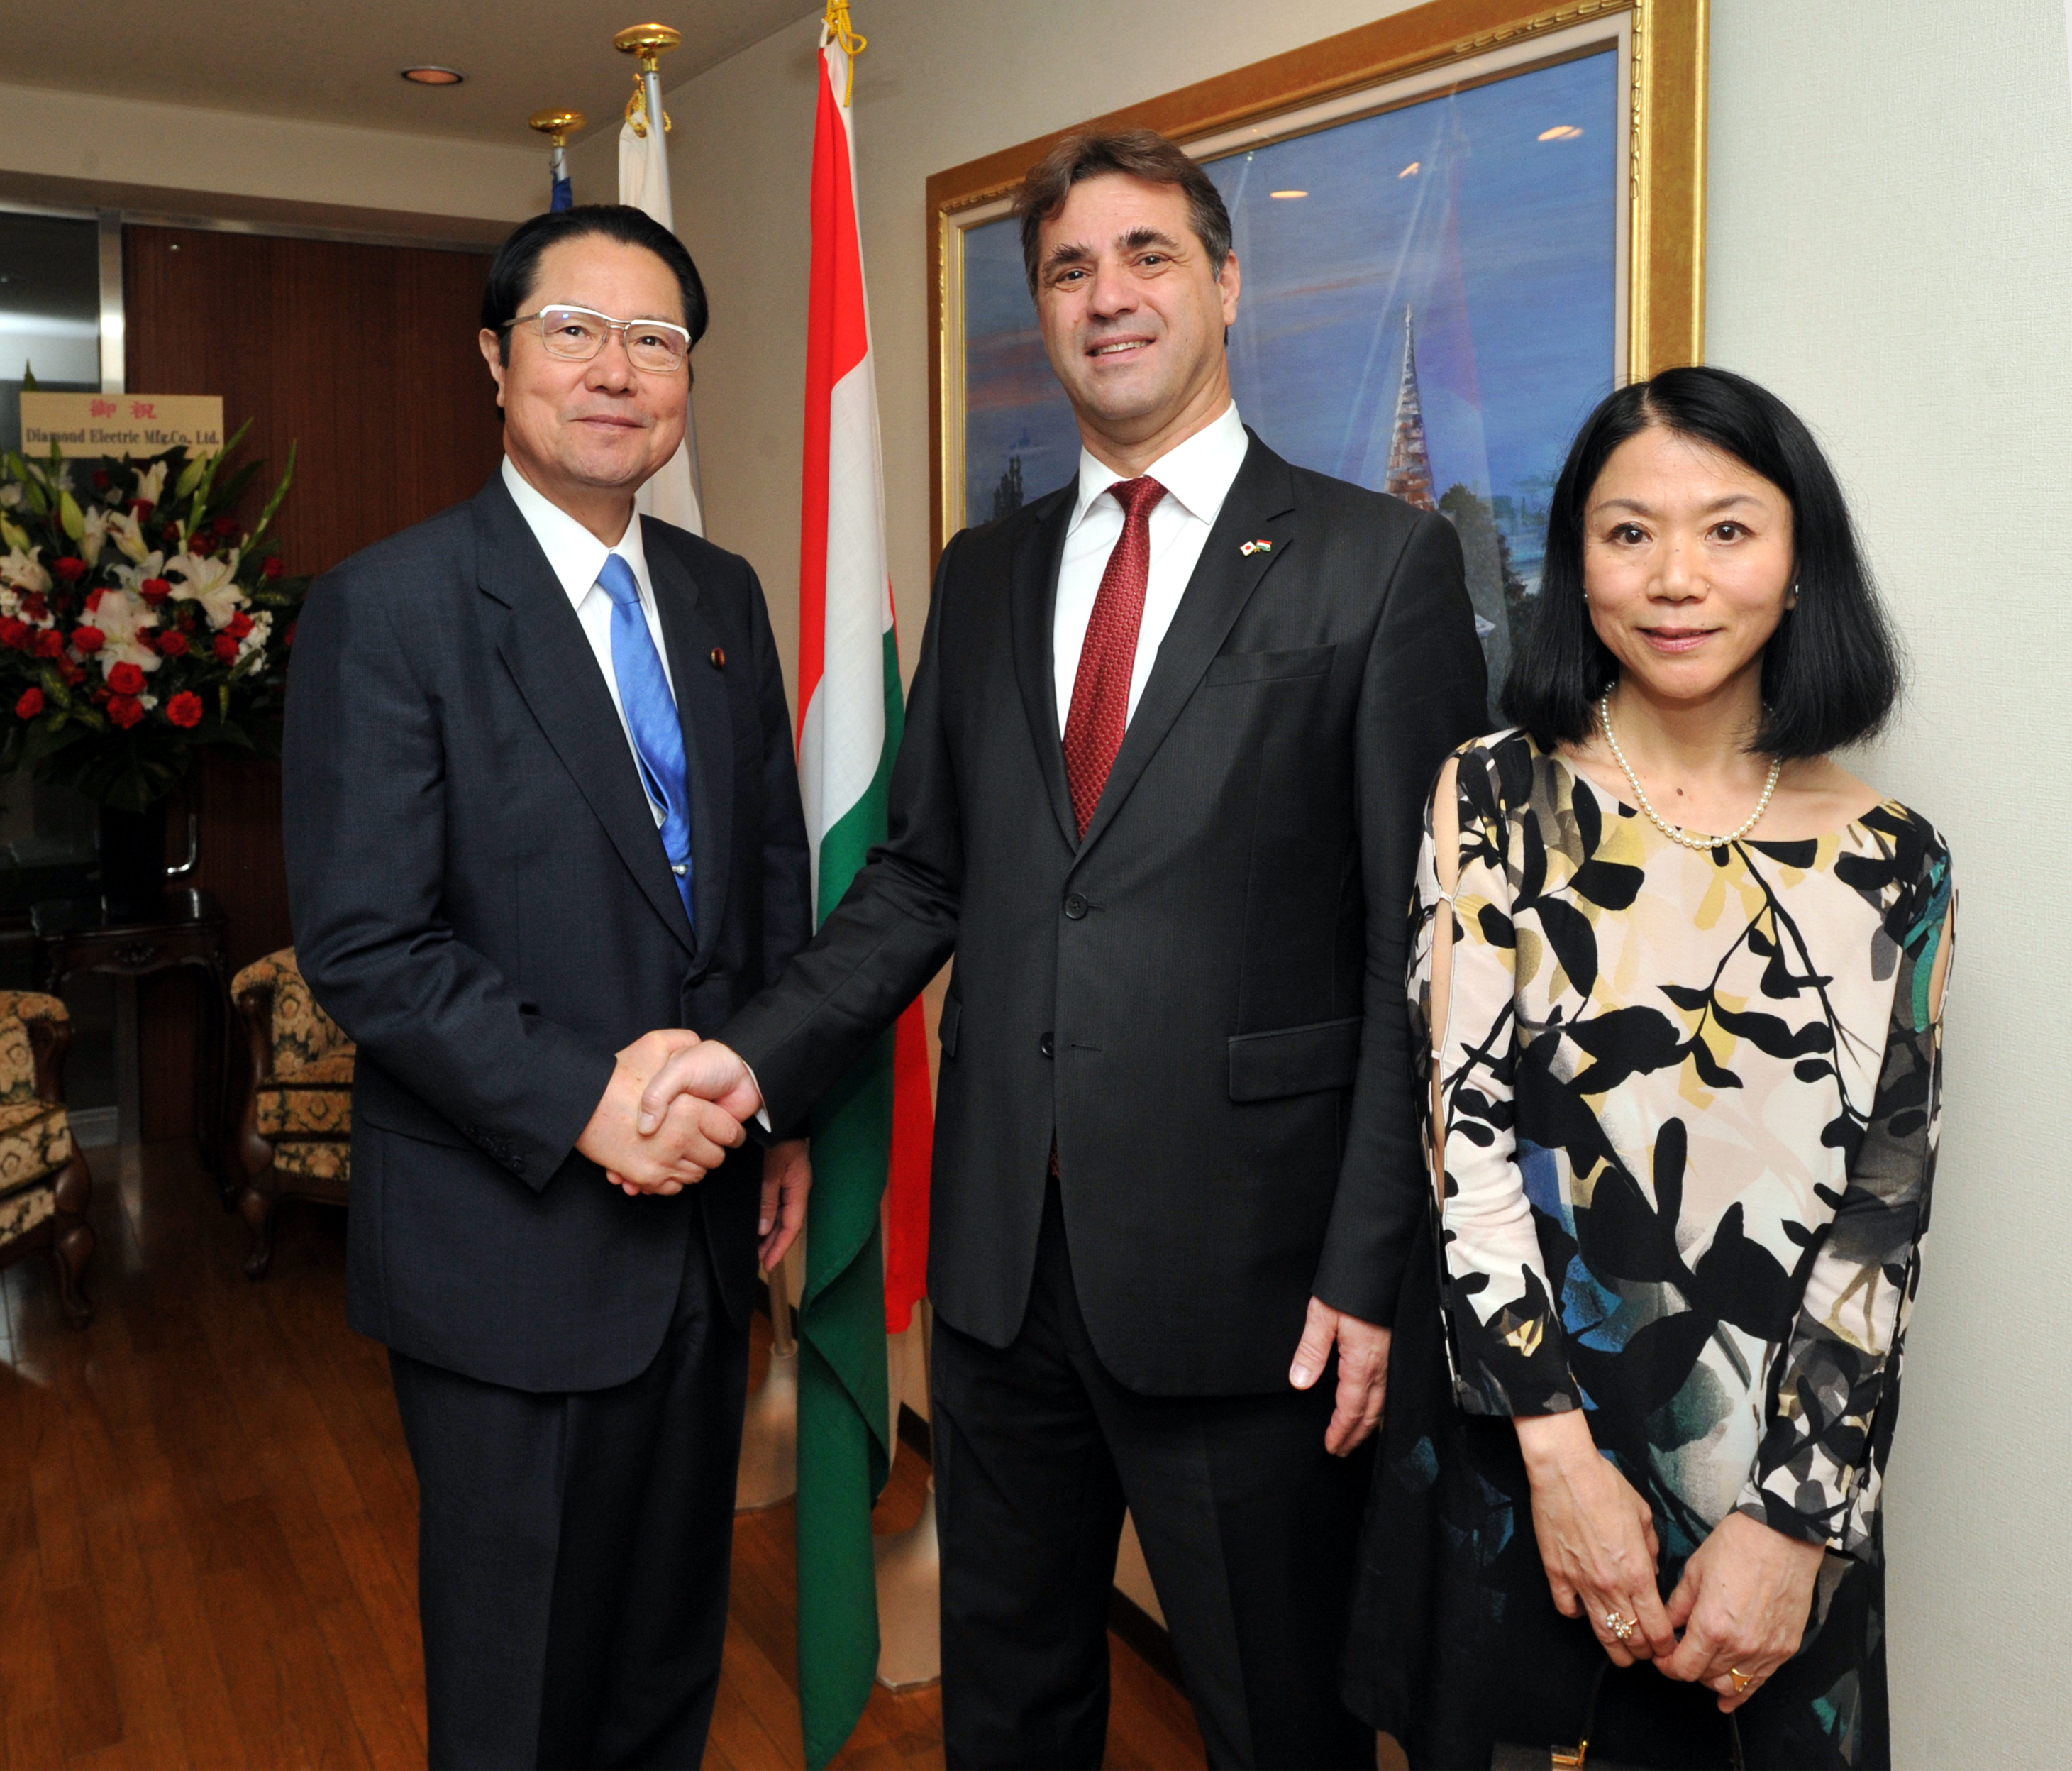 Hungarian Ambassador Istvan Szerdahelyi (center) and his wife, Reiko, welcome Seishiro Eto, chairman of the Japan-Hungary Parliamentary Friendship League, during a reception celebrating the country's National Day at the embassy in Tokyo on Oct. 22. | YOSHIAKI MIURA